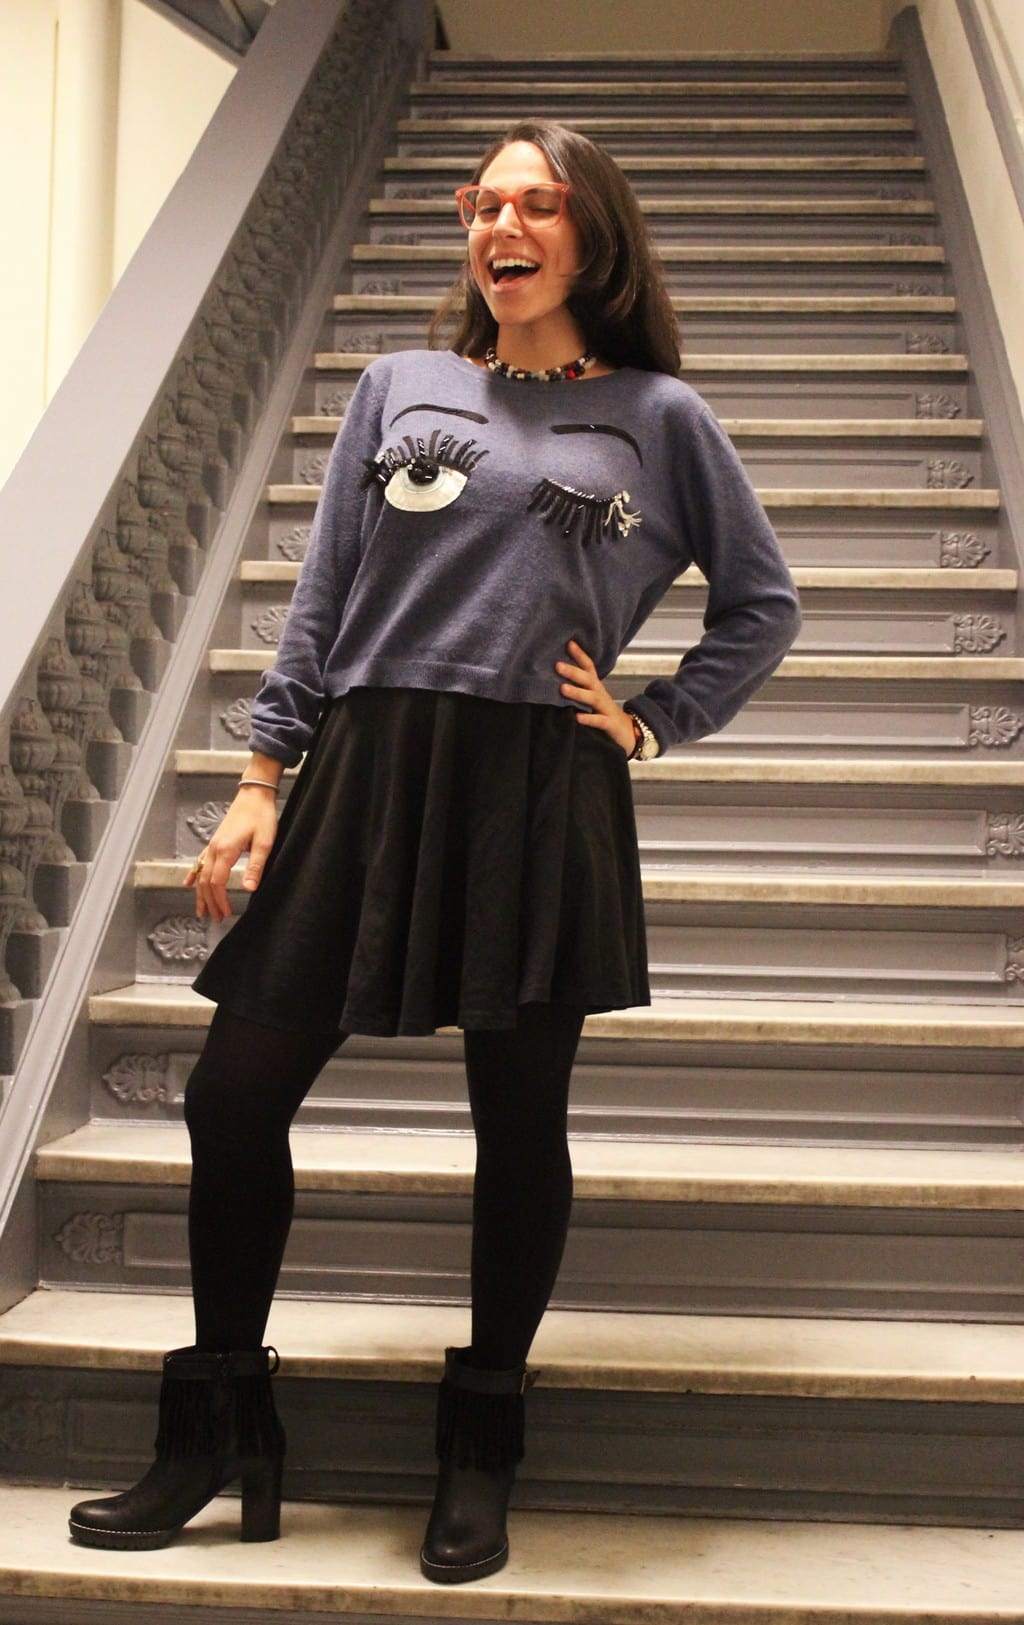 This Barnard College student wears a grey winking eye handmade grey sweater with a flowy black skirt with opaque black tights and fringe heeled black booties. She accessorizes with layered beaded necklaces and bright red eyeglasses.